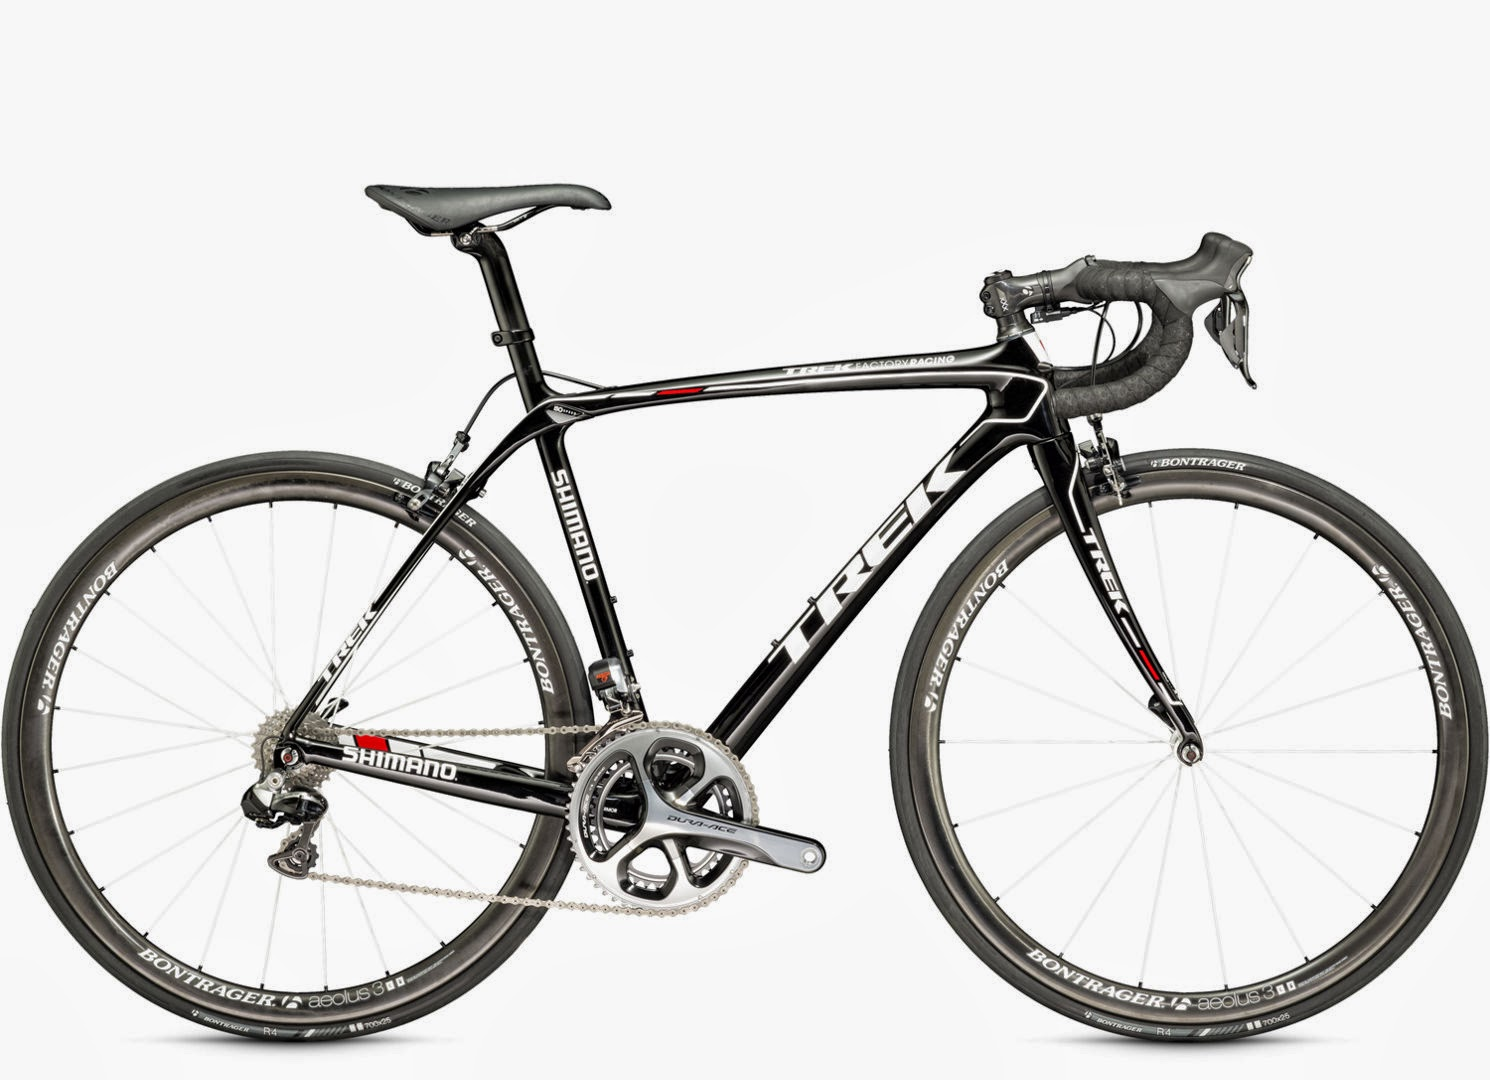 Bumsteads Road and Mountain Bikes: 2014 Trek Domane